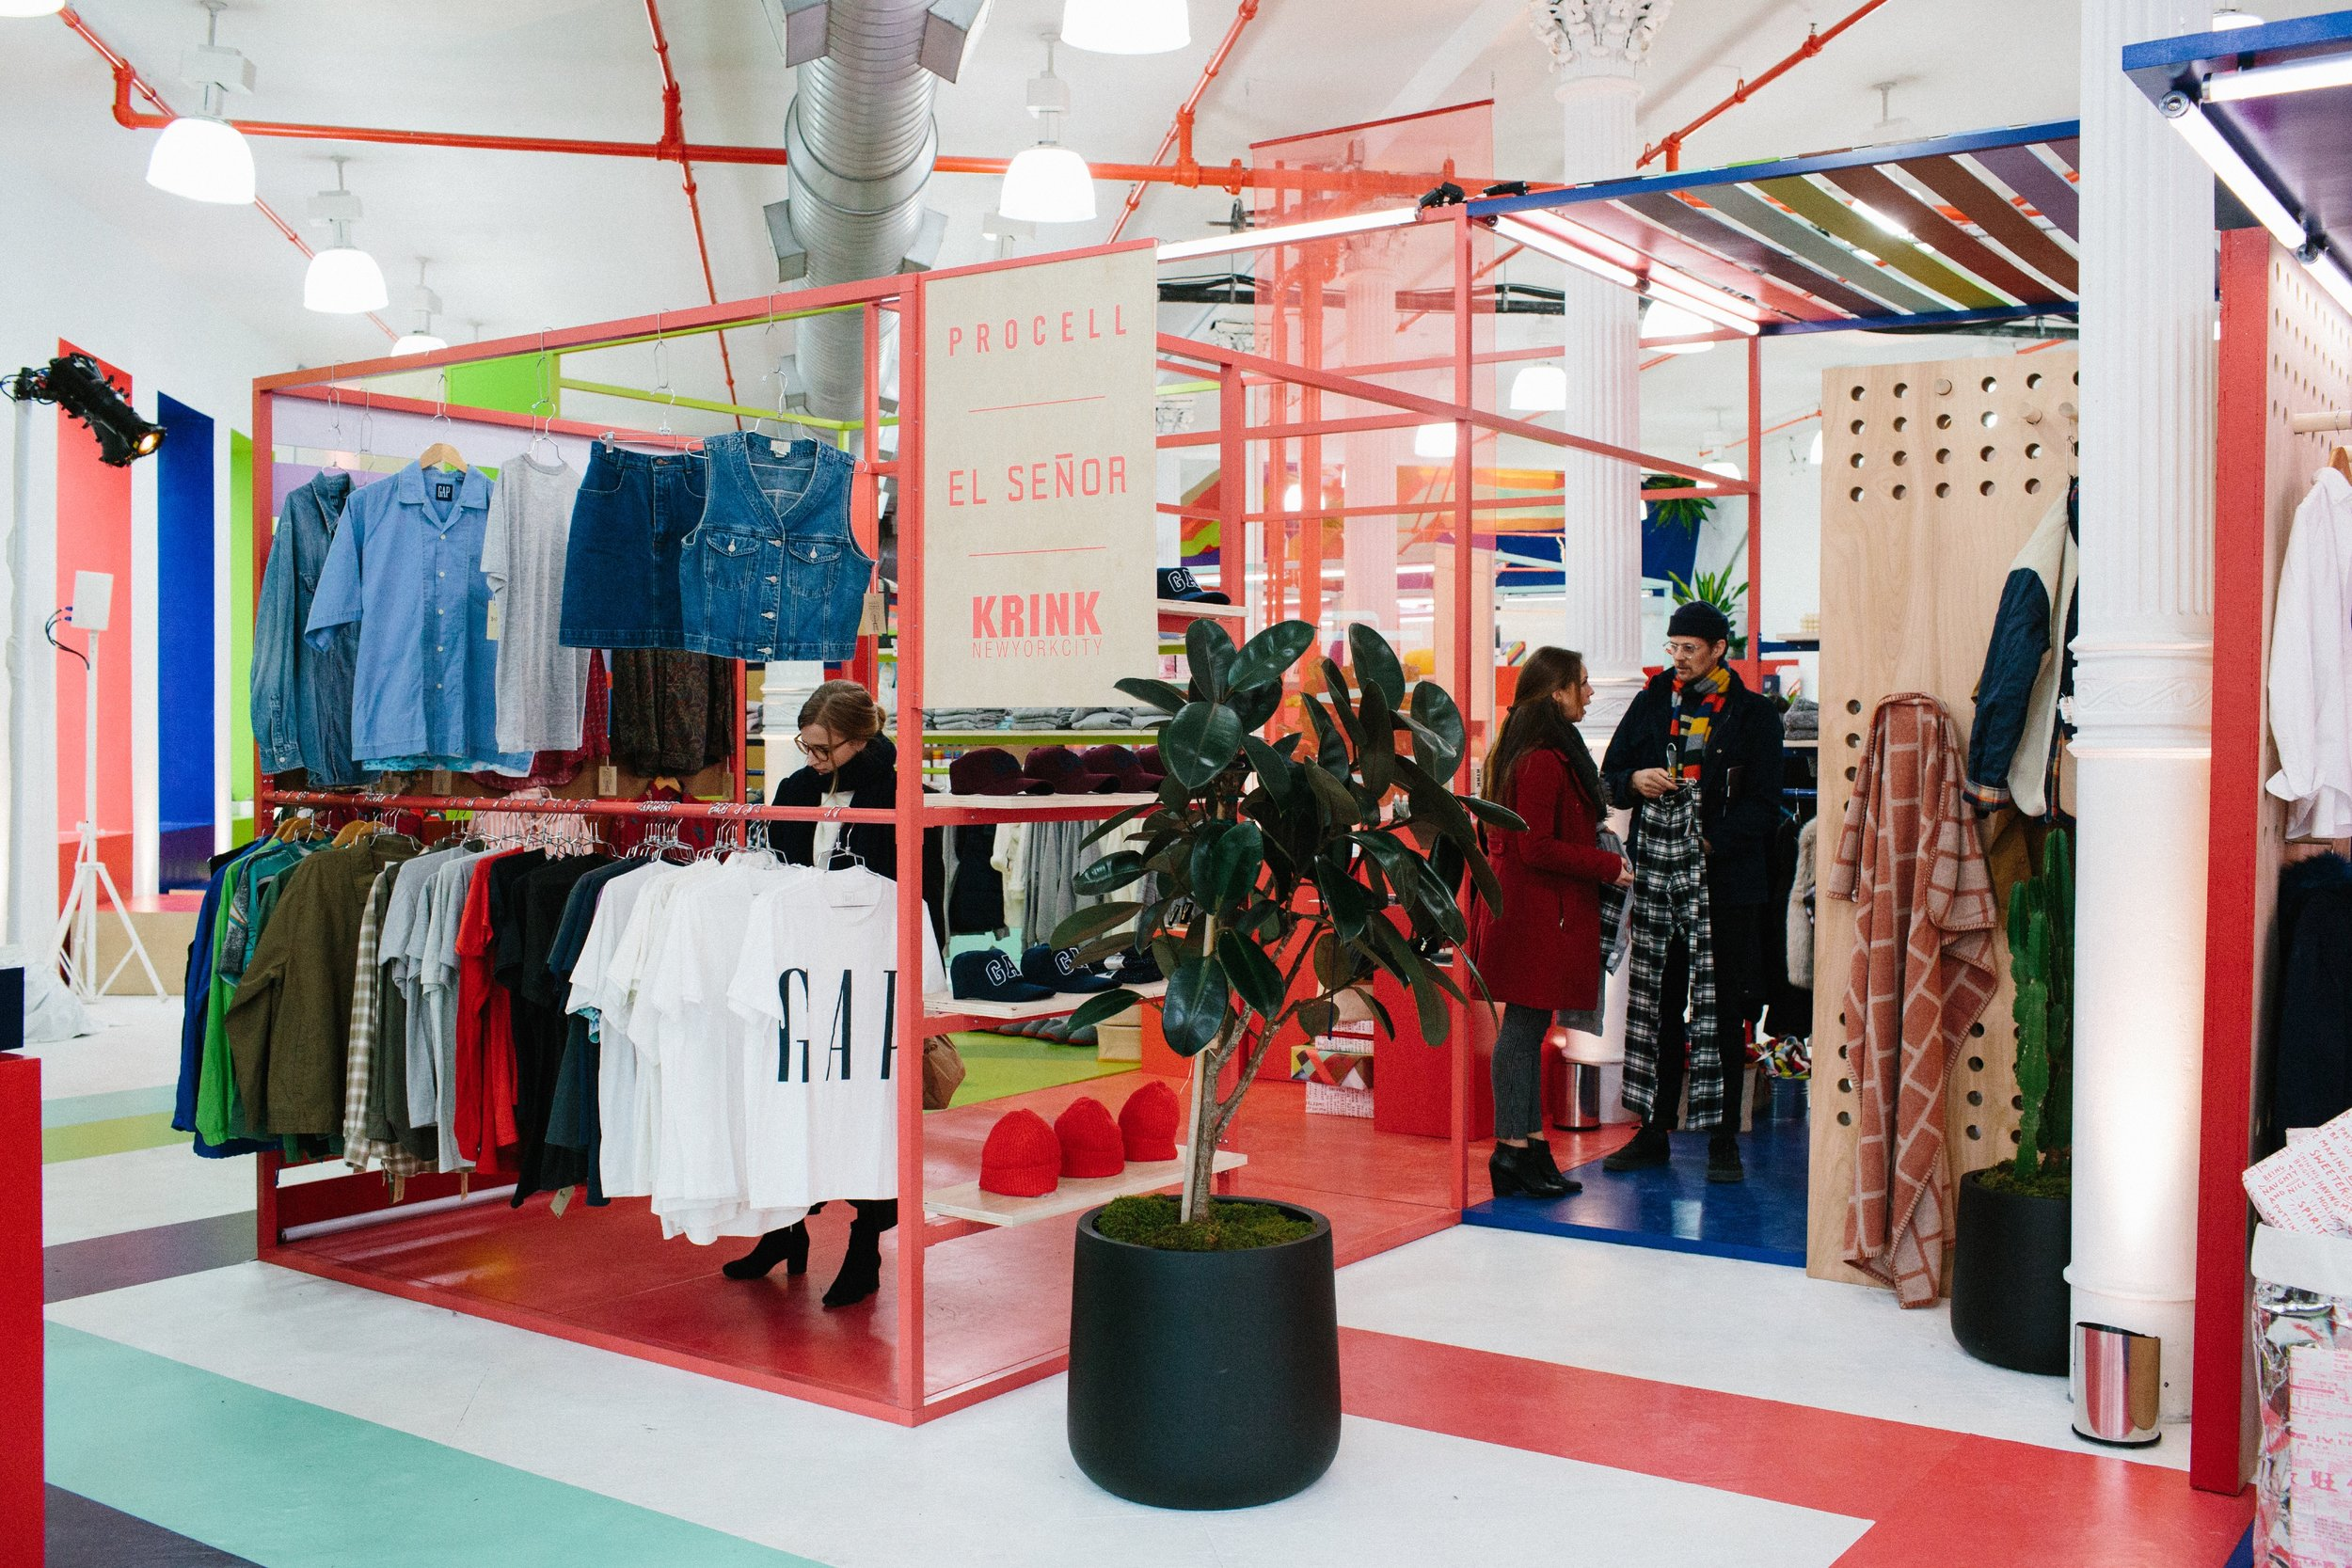 Gap, Retail, Holiday, Market, Vendors, Pop up, Event, Activation, Soho, New York, Invisible North, Strategy, Design, Production, Trend, Independent retailers, brand, experience, experiential, Agency, gift shop, boutique